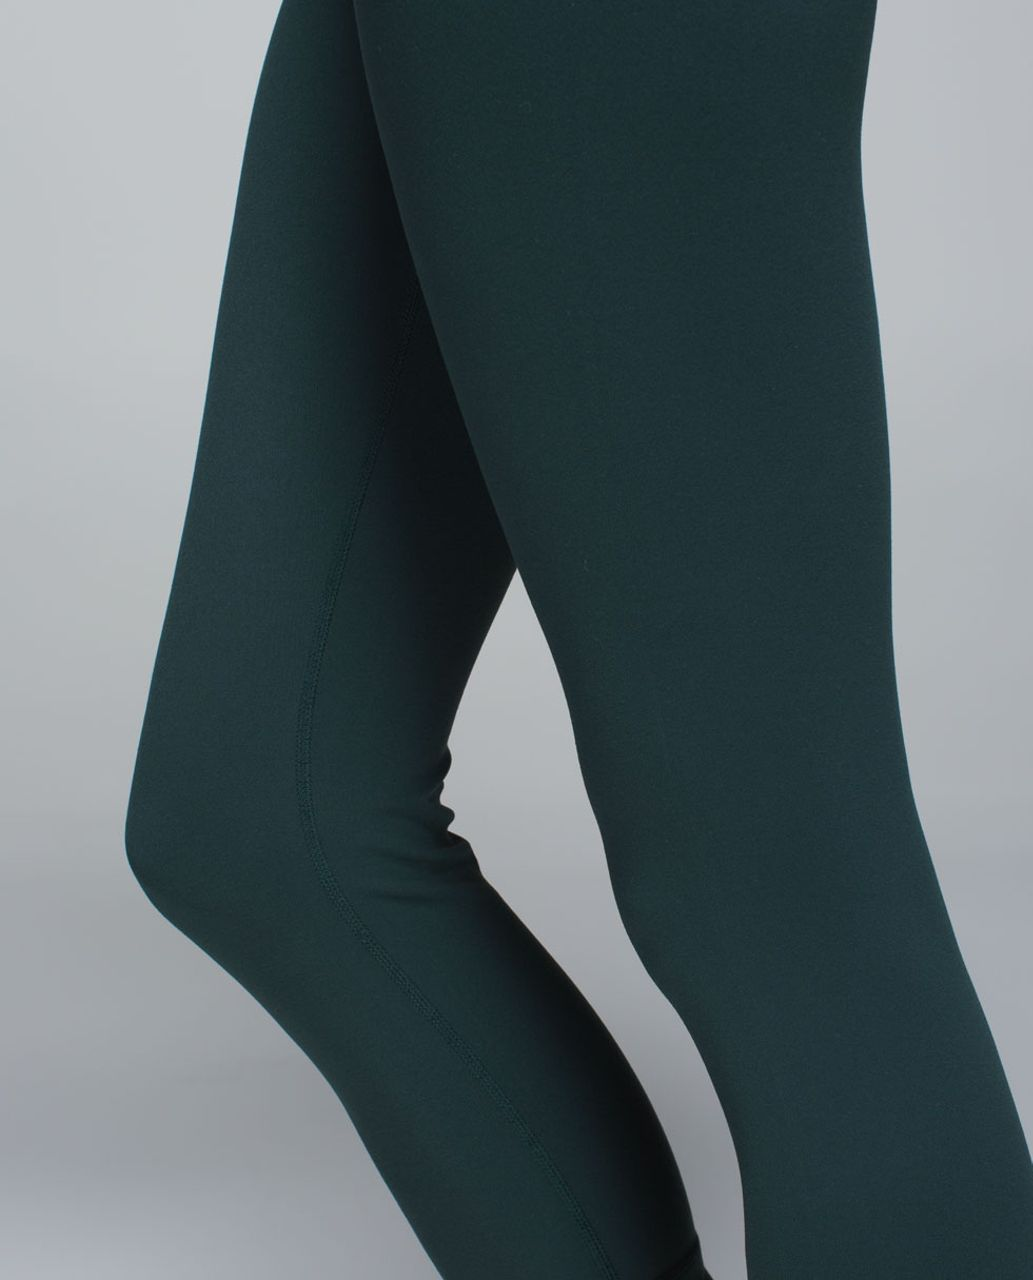 Lululemon Wunder Under Crop (Reversible) - Fuel Green / Black